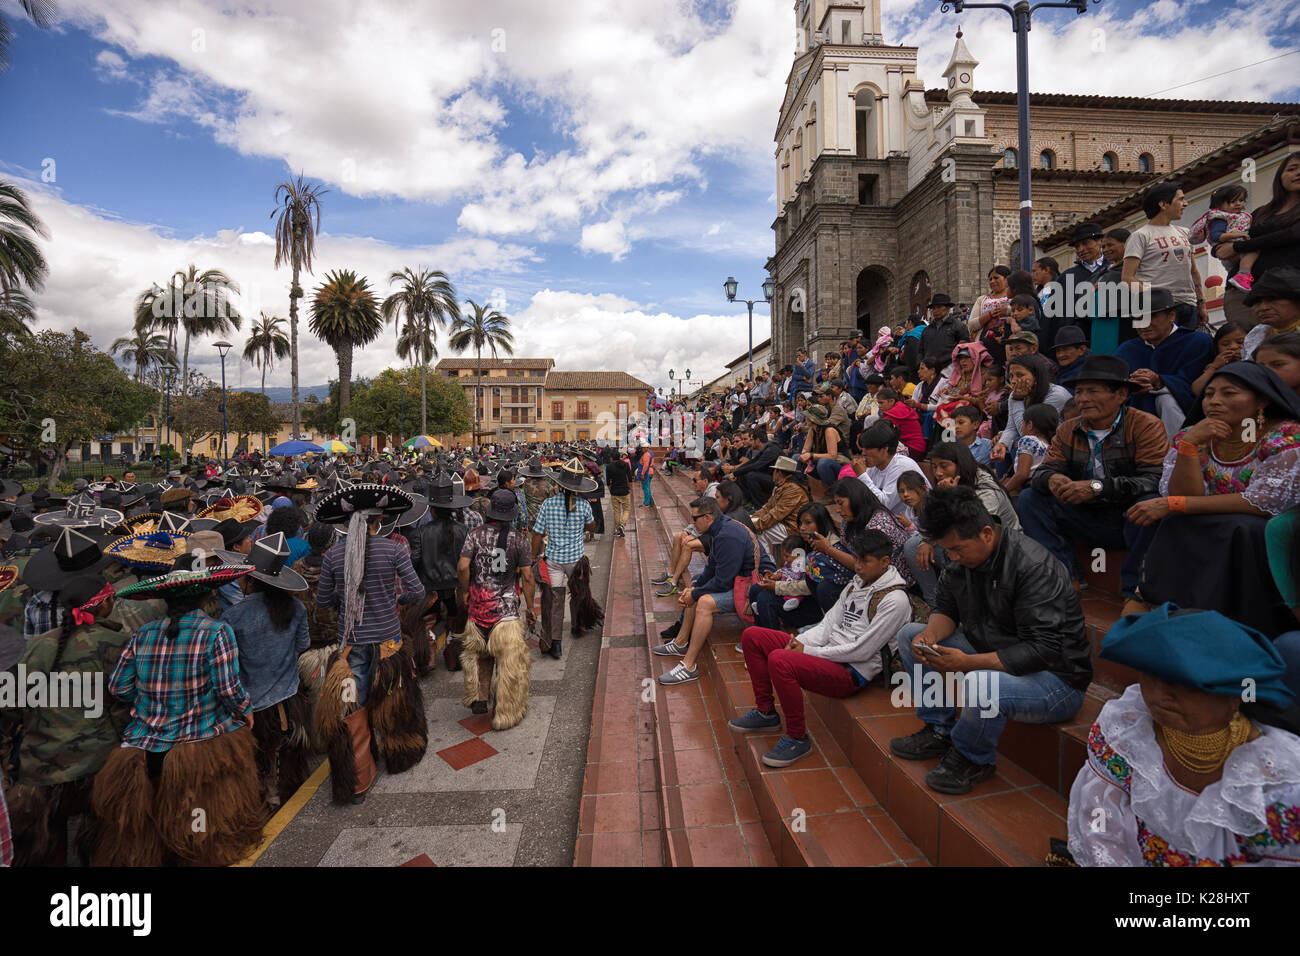 June 25, 2017 Cotacachi, Ecuador: spectators stting on the stairs of the church in the main plaza watching the Inti Raymi parade - Stock Image